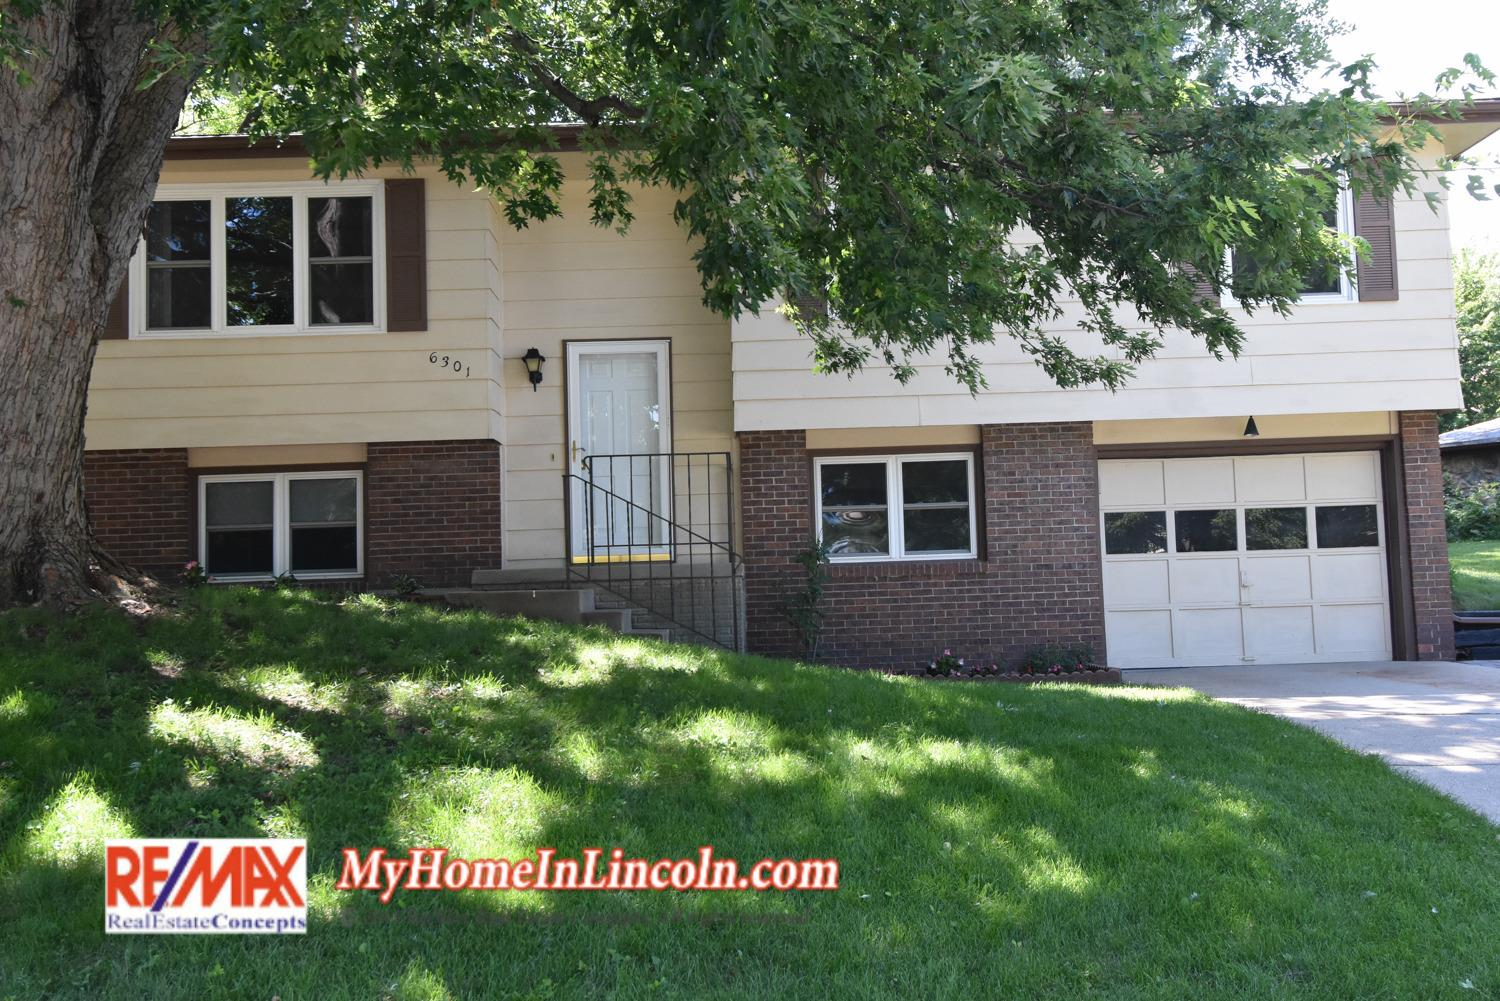 Photo of 6301 South 48th St  Lincoln  NE